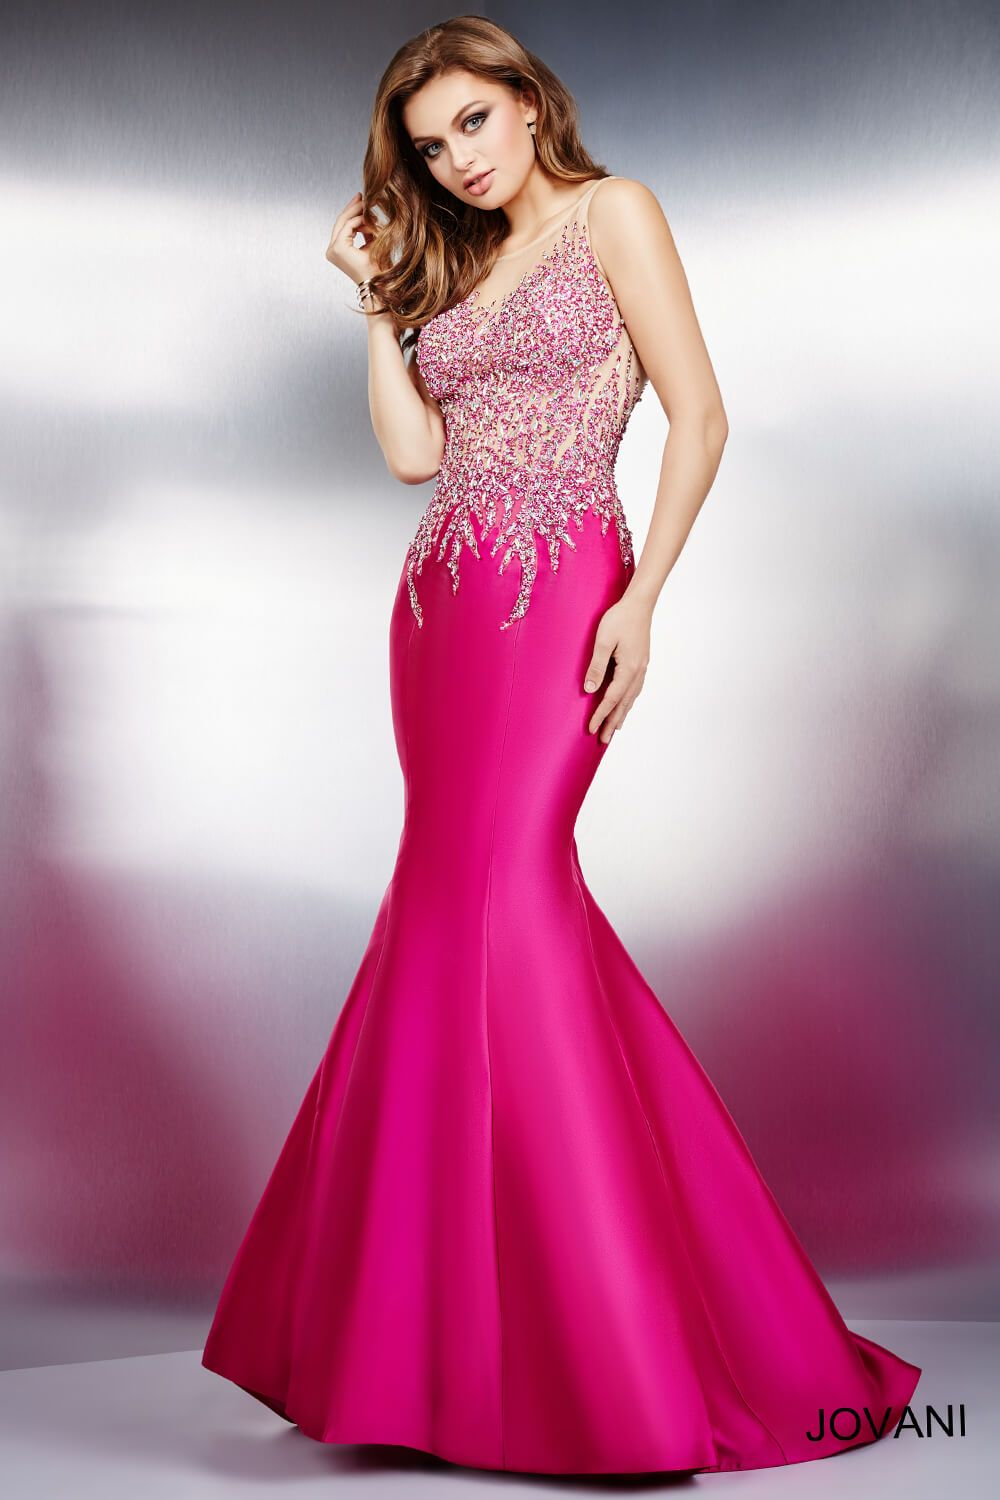 Fuchsia Sleeveless Mermaid Prom Dress 21929 | ♚ GLAMOUR ...